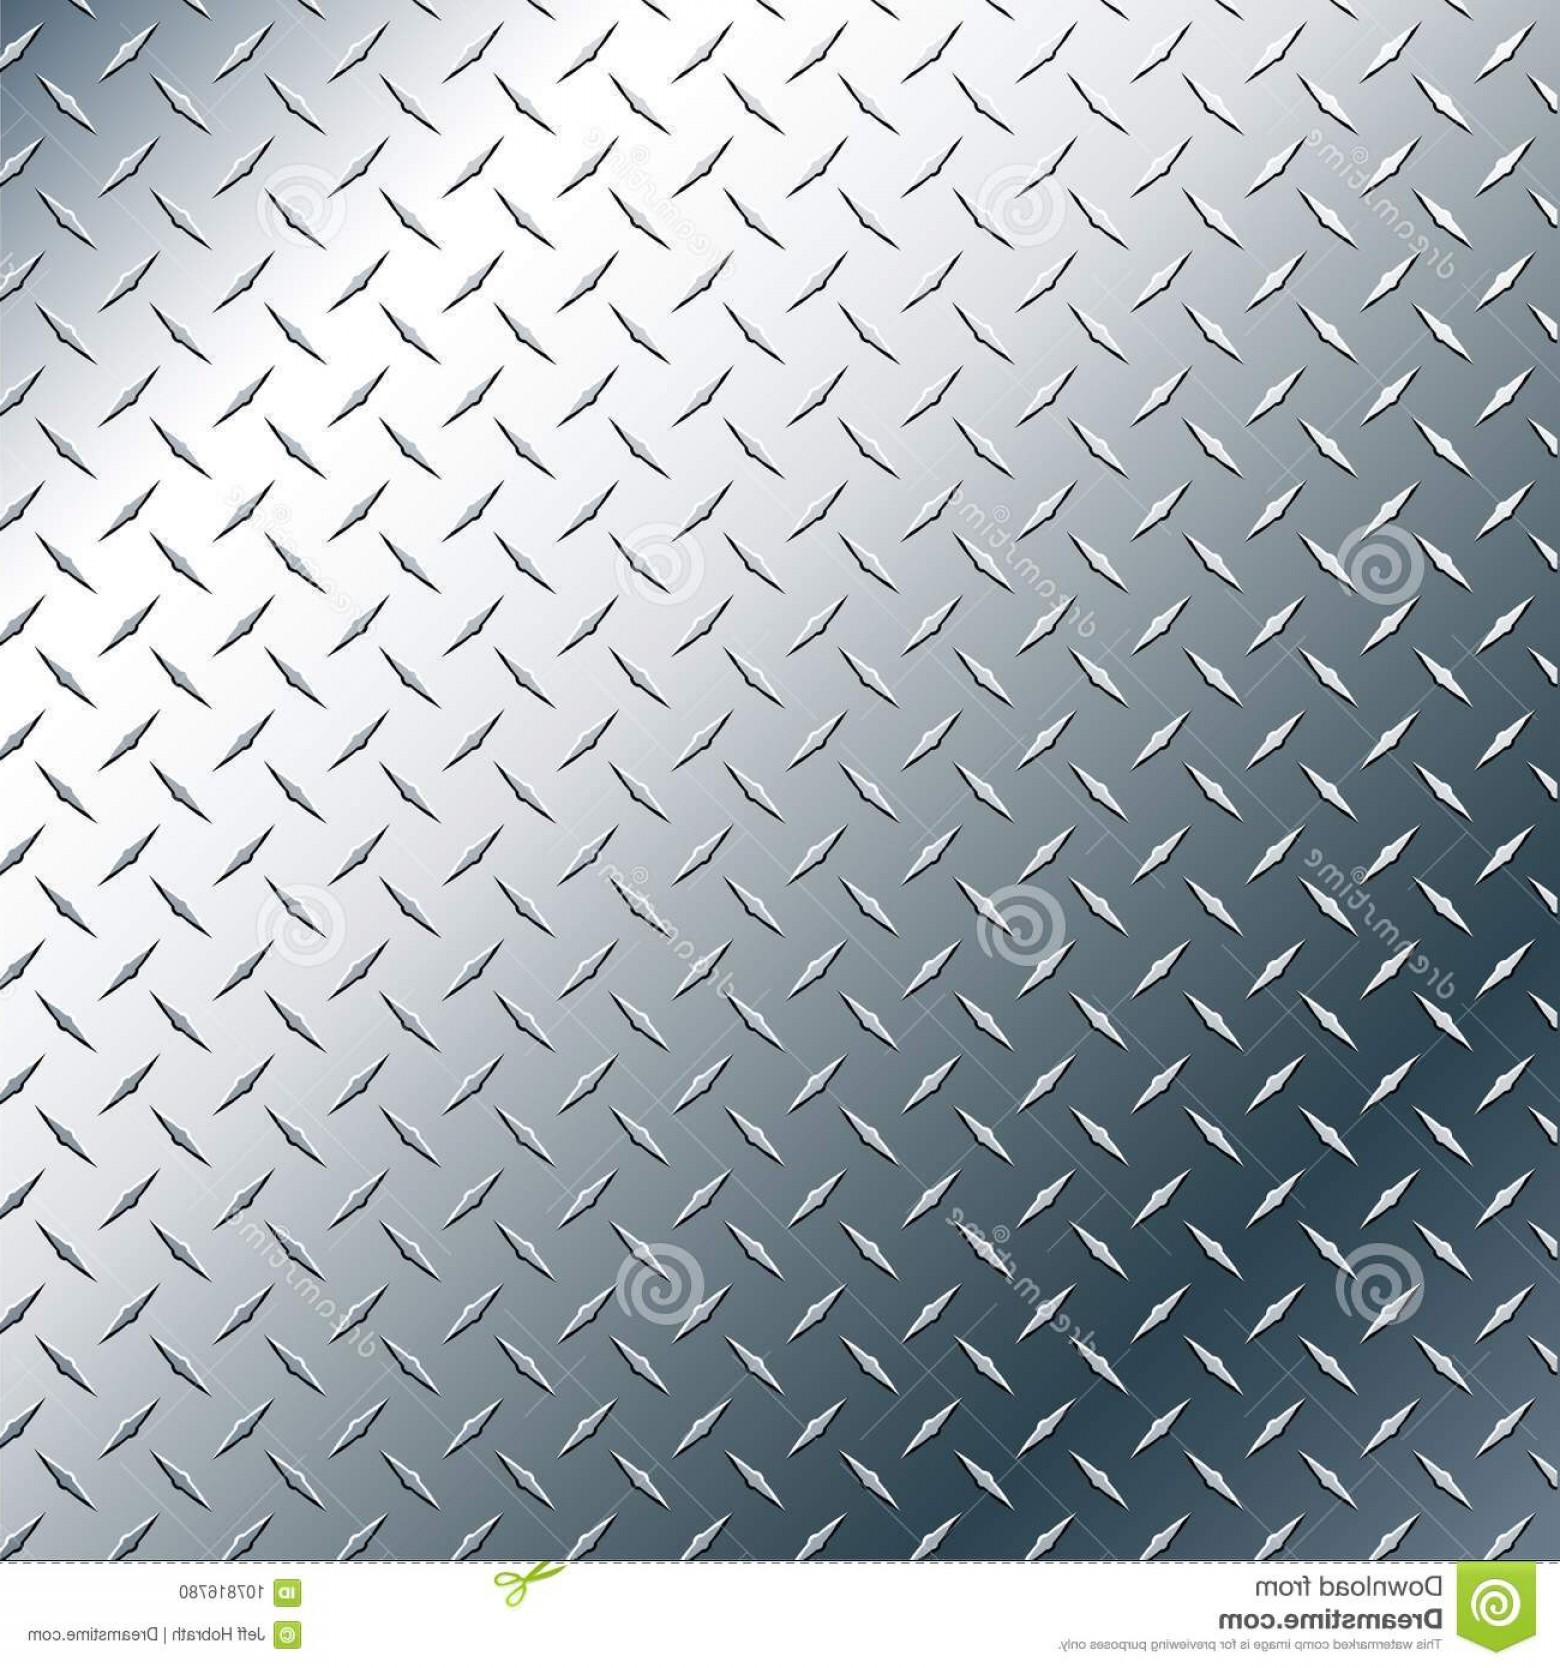 Diamond Plate Vector Pattern: Chrome Diamond Plate Realistic Vector Graphic Illustration Metal Background Pattern Subtle Contrasting Shiny Reflection Image